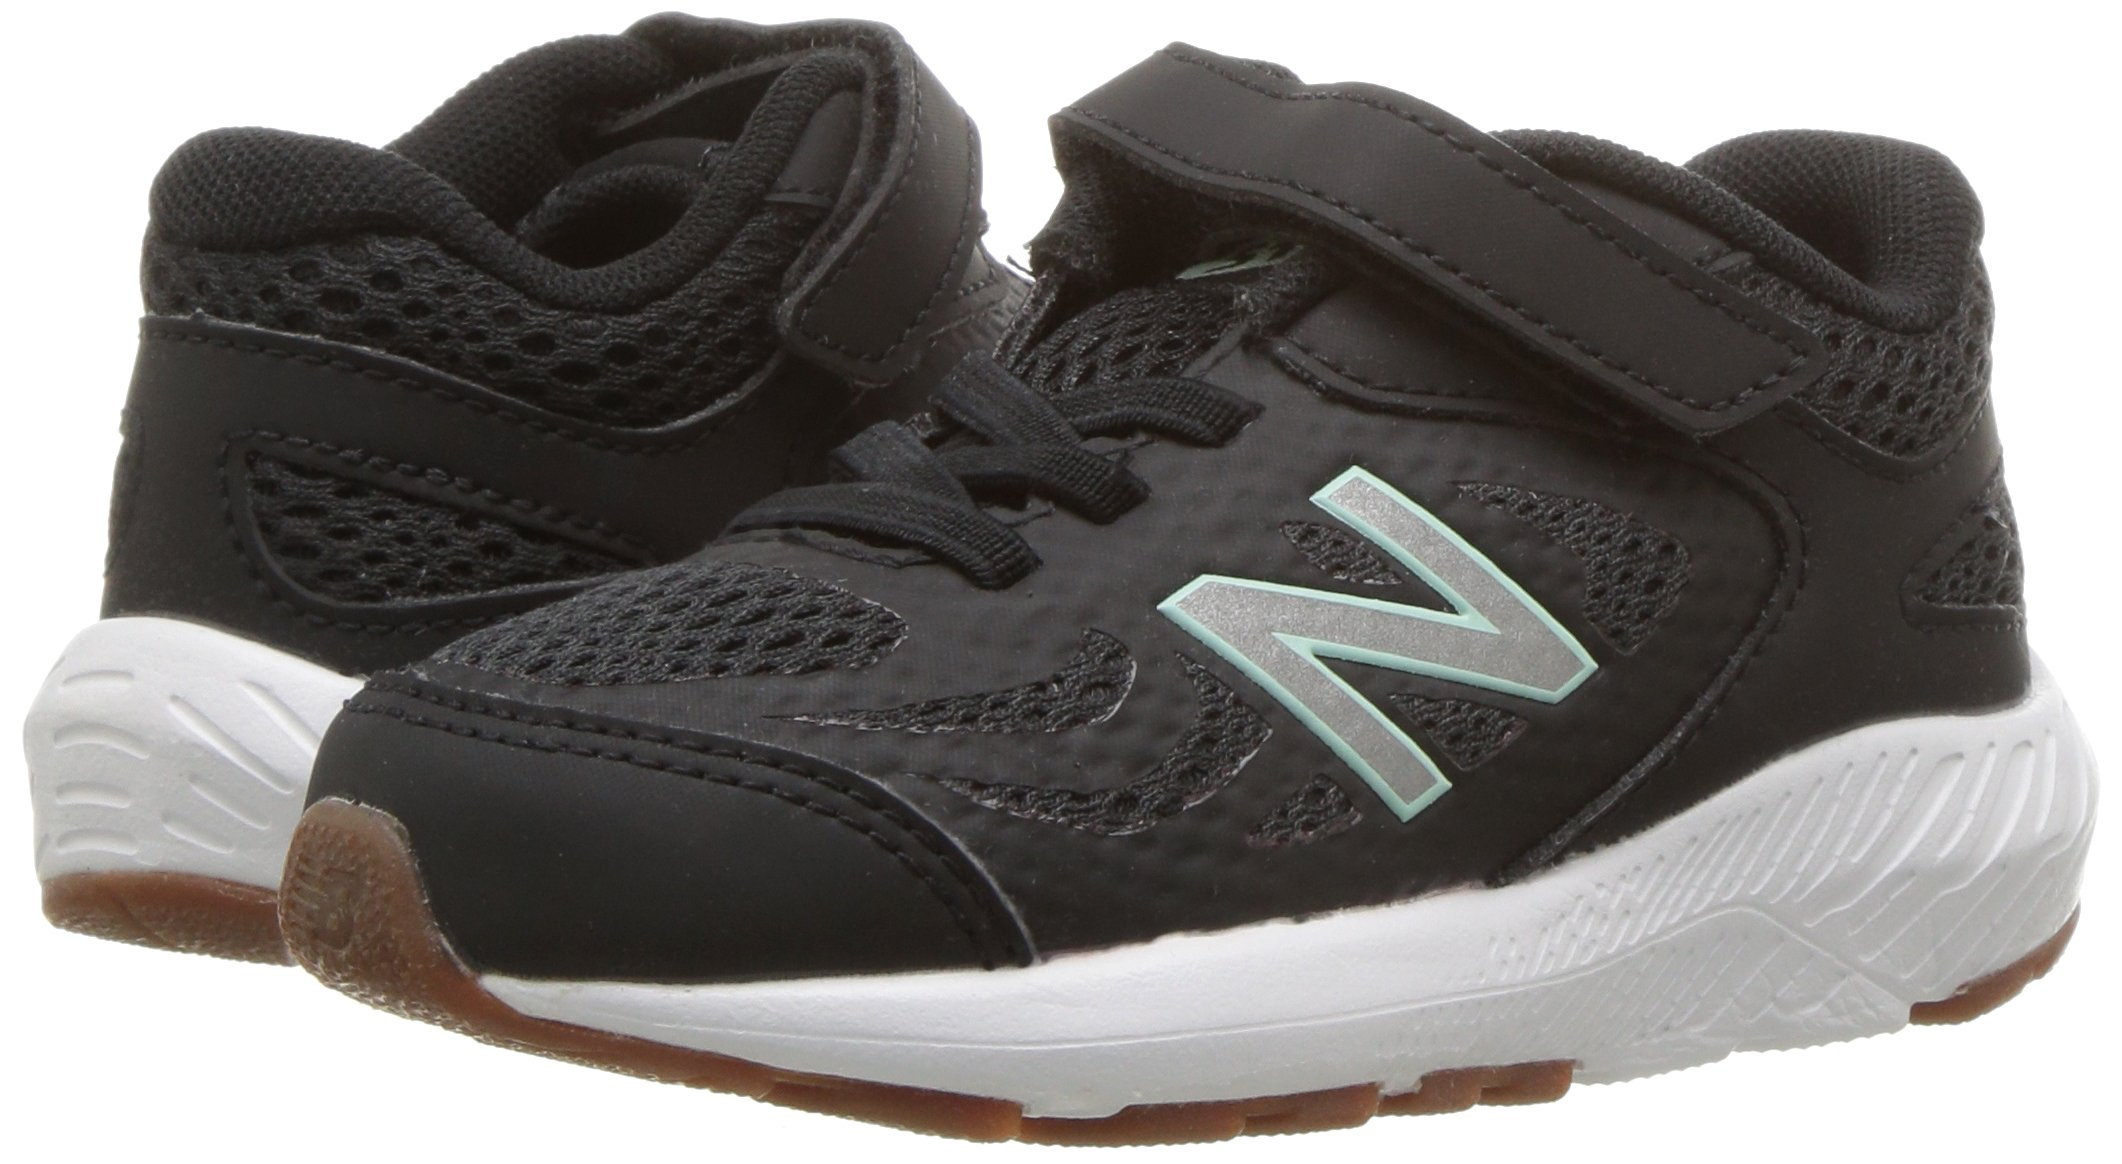 New Balance Girls' 519v1 Hook and Loop Running Shoe Black/Seafoam 2 M US Infant by New Balance (Image #6)